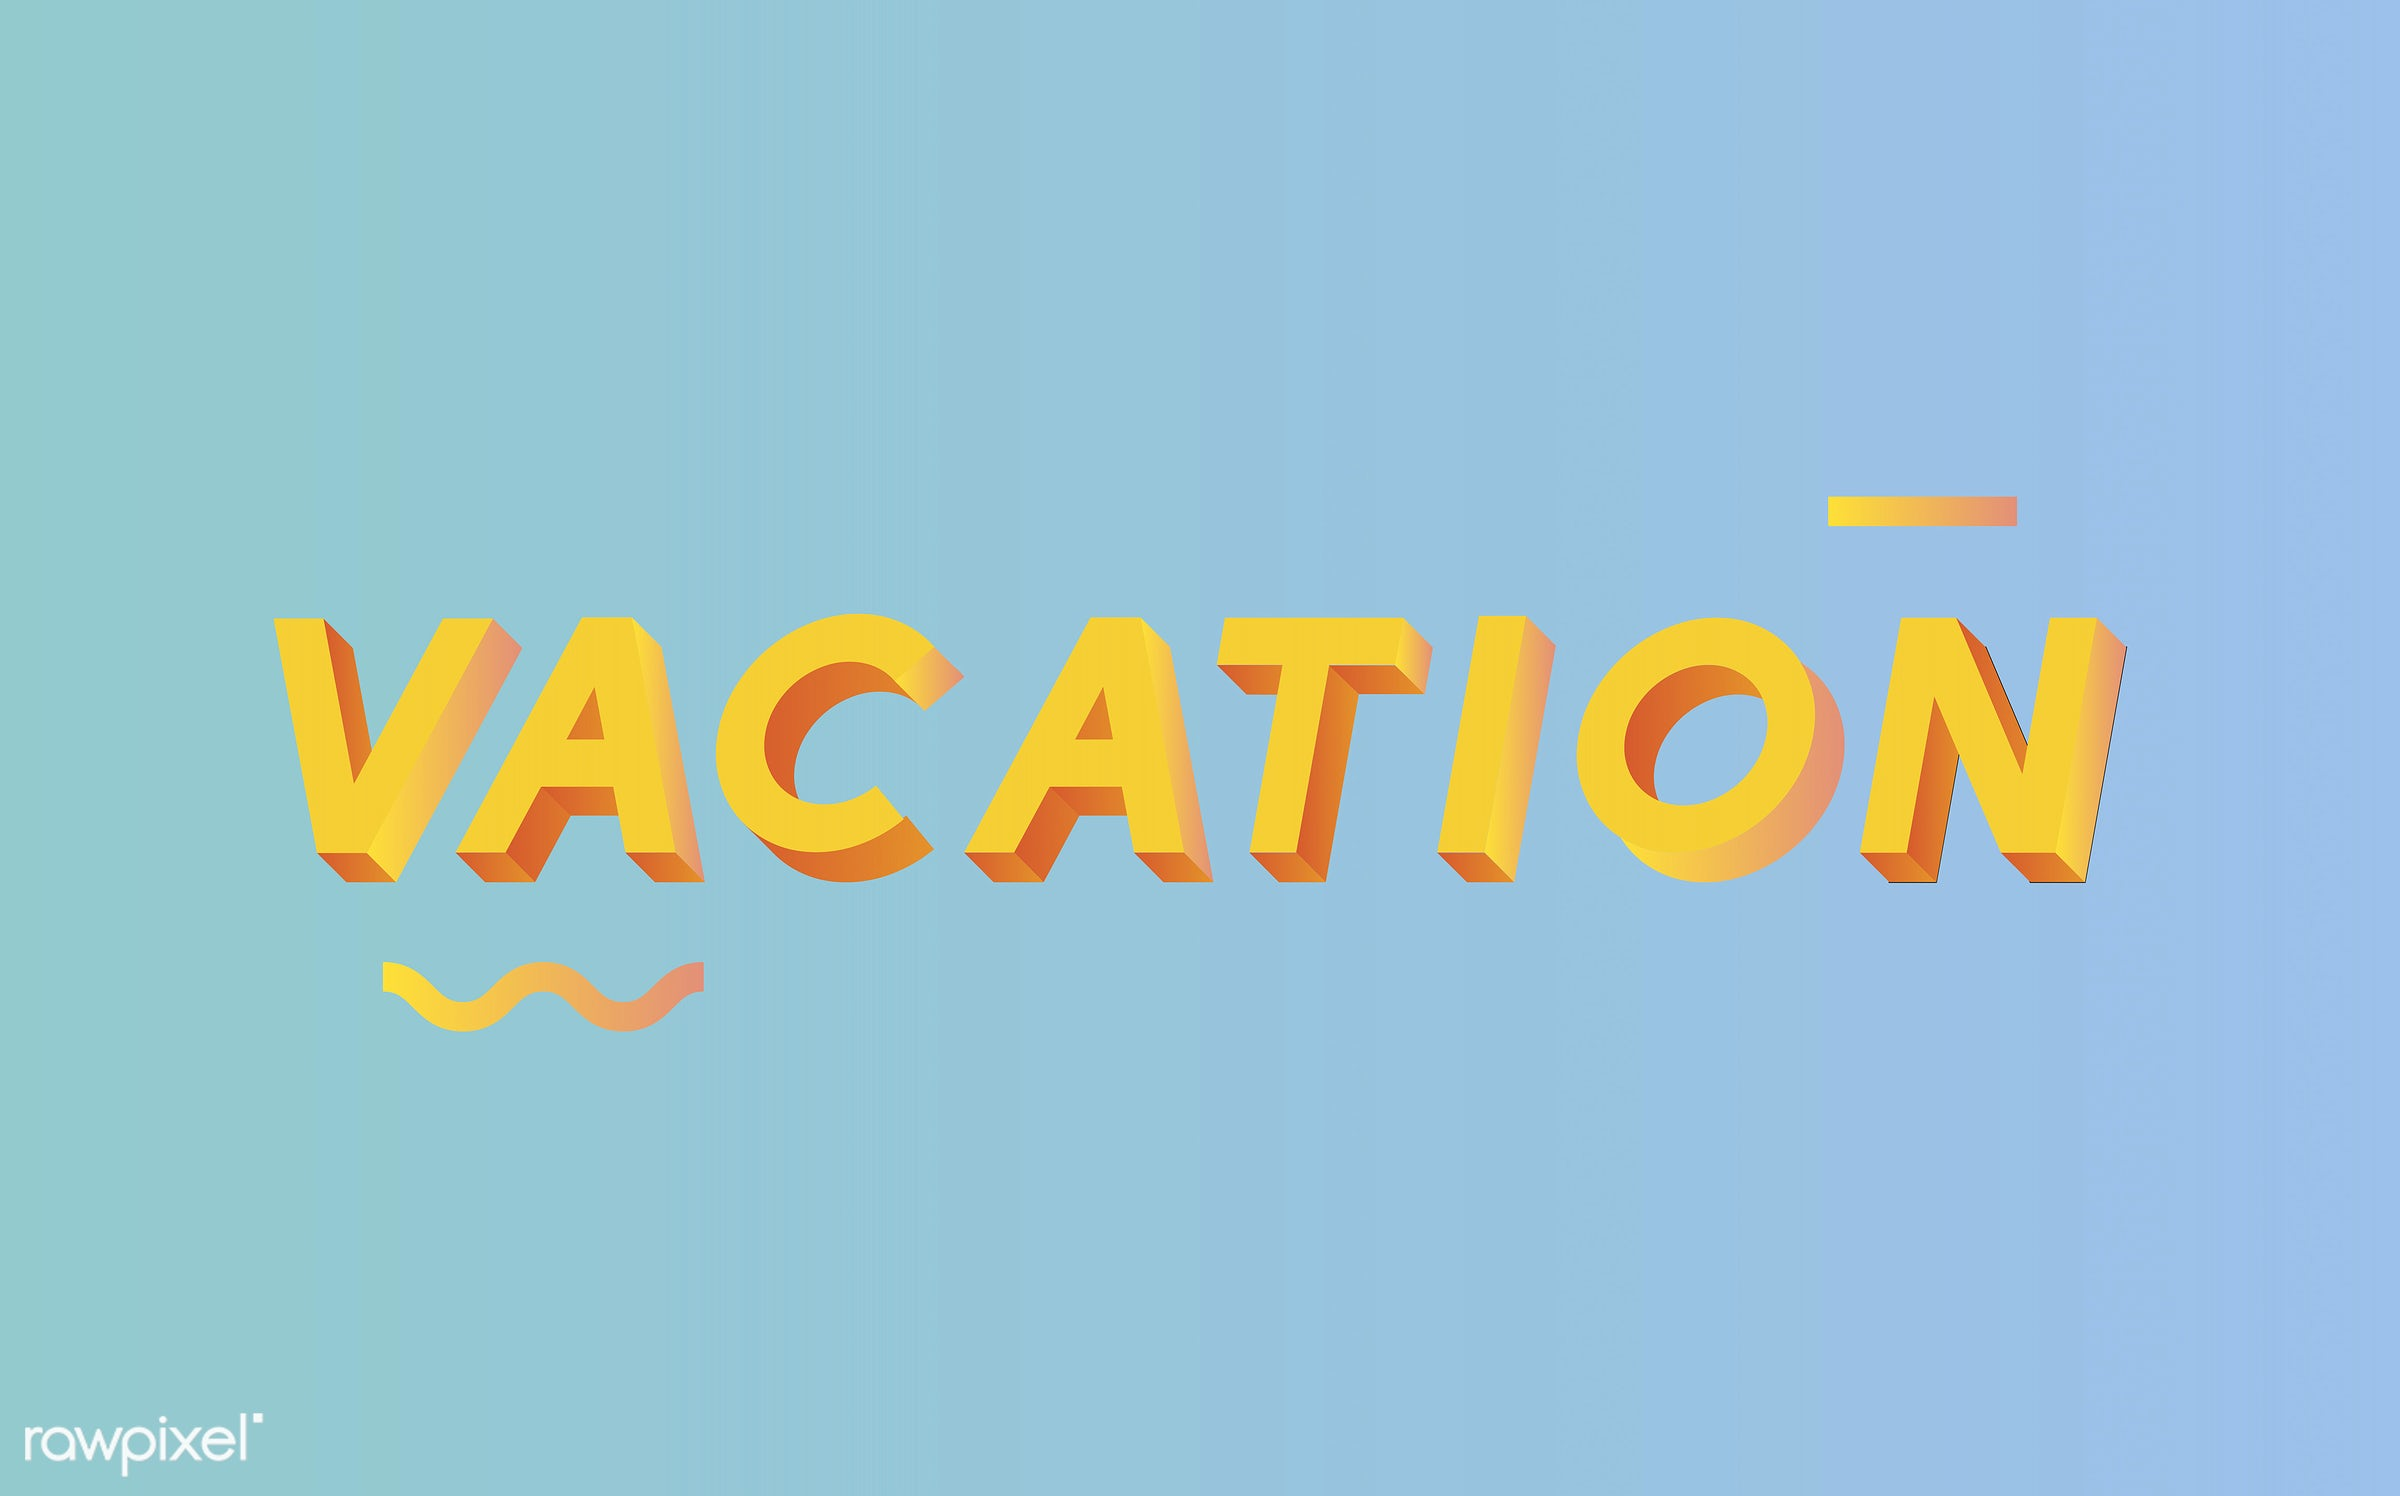 neon, colorful, 3d, three dimensional, vector, illustration, graphic, word, blue, yellow, vacation, holiday